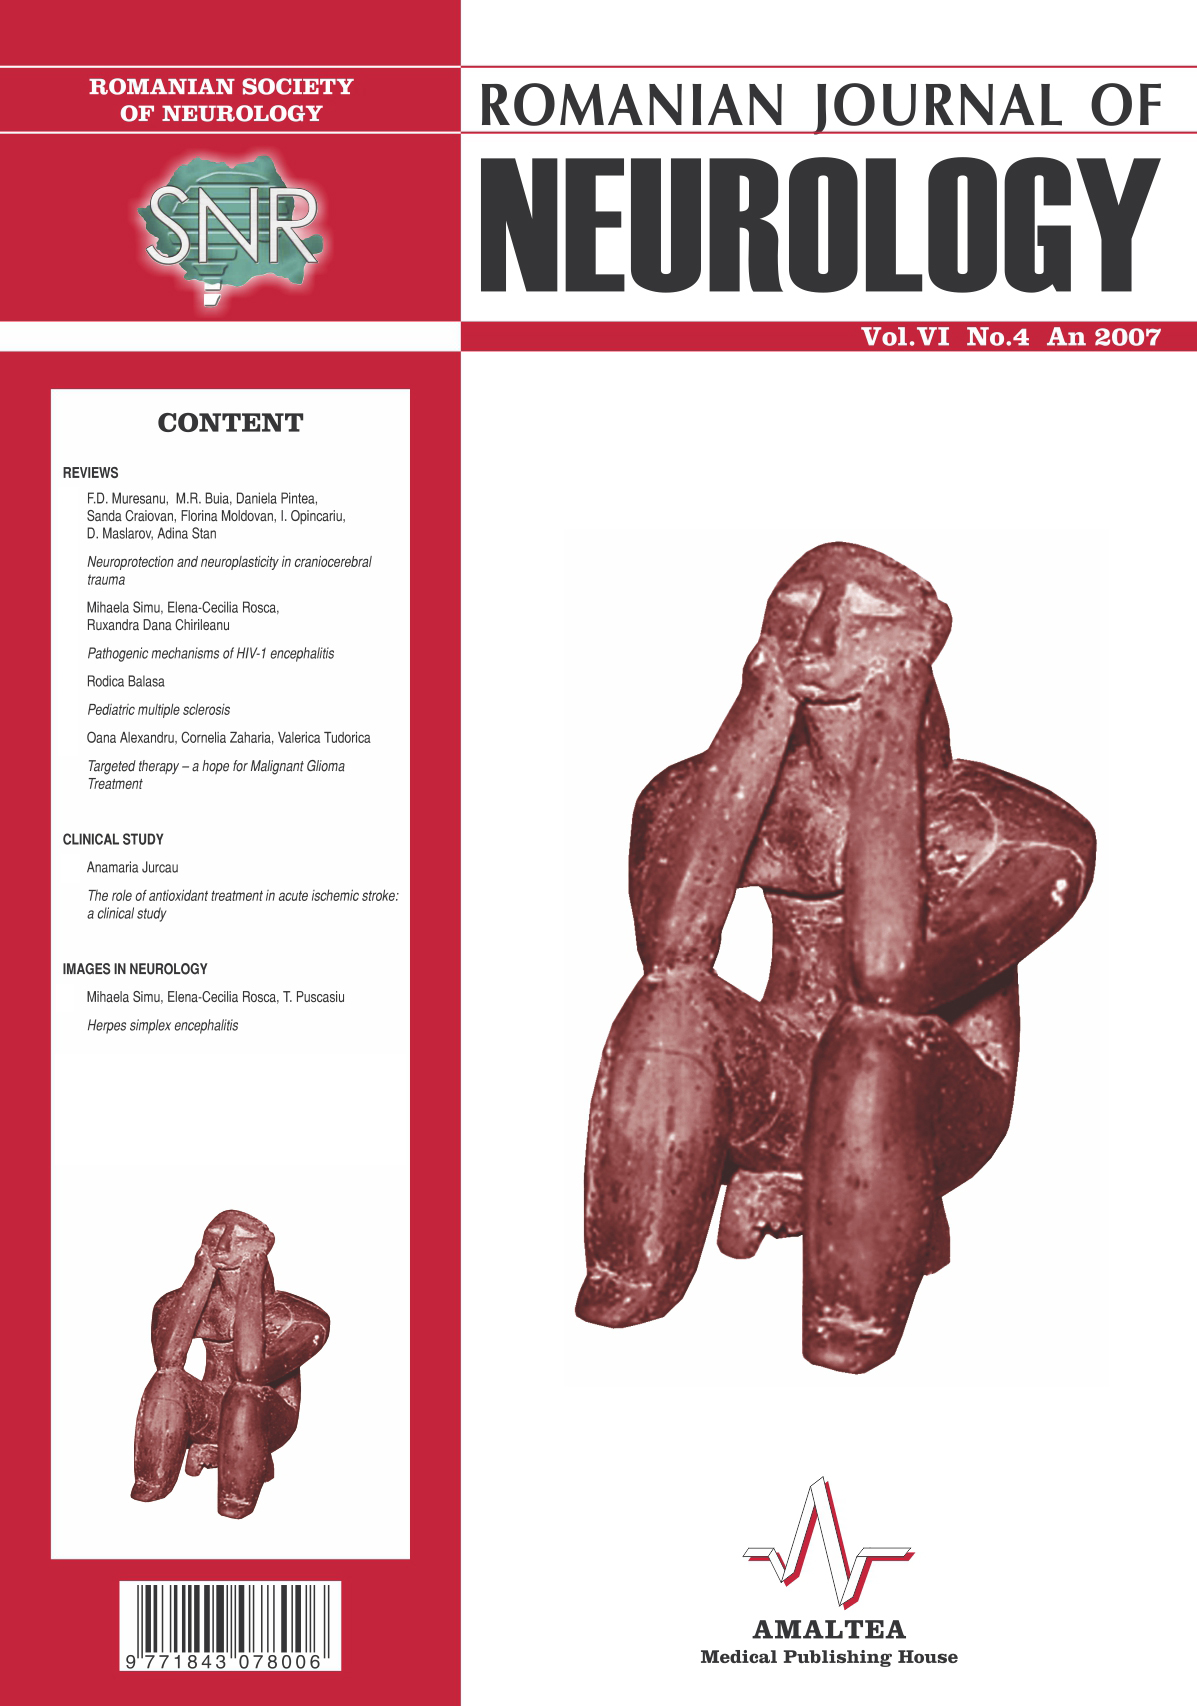 Romanian Journal of Neurology, Volume VI, No. 4, 2007